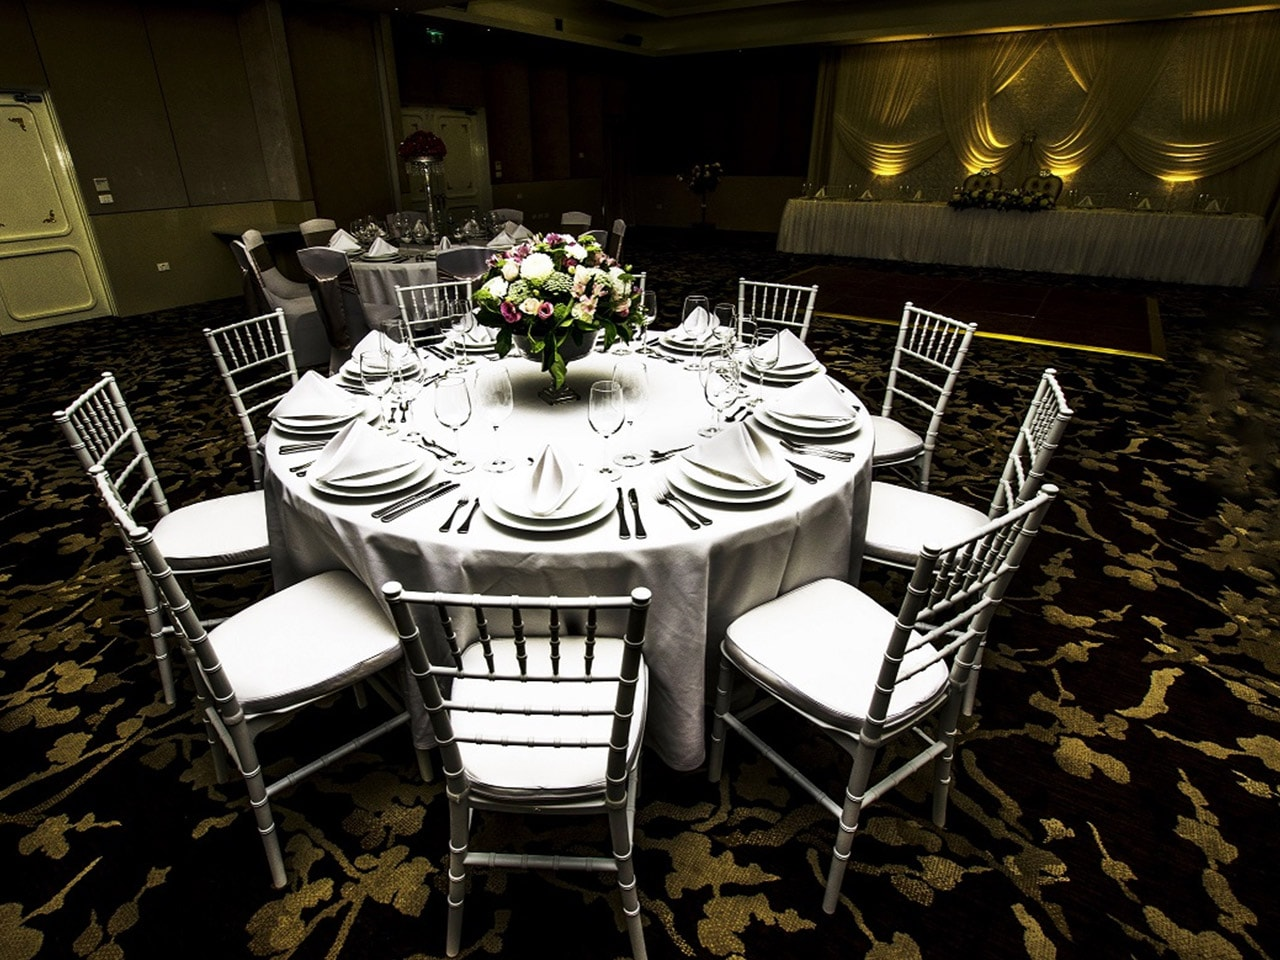 Banquet Style Setup inside the Function Room and a Long Table in Front